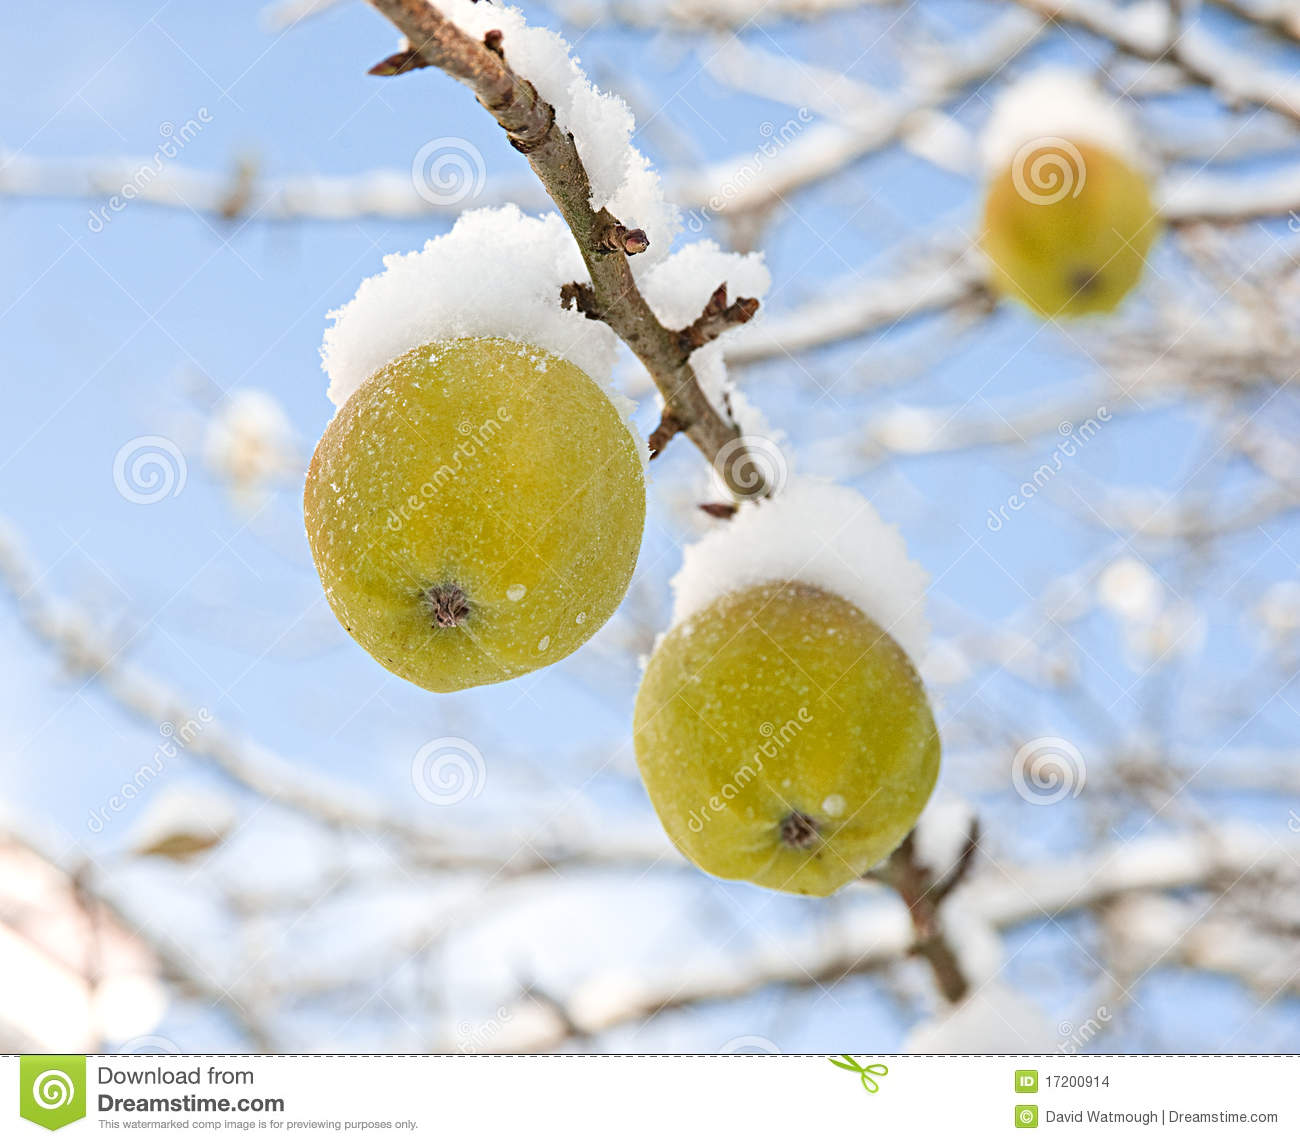 Snow capped apples.